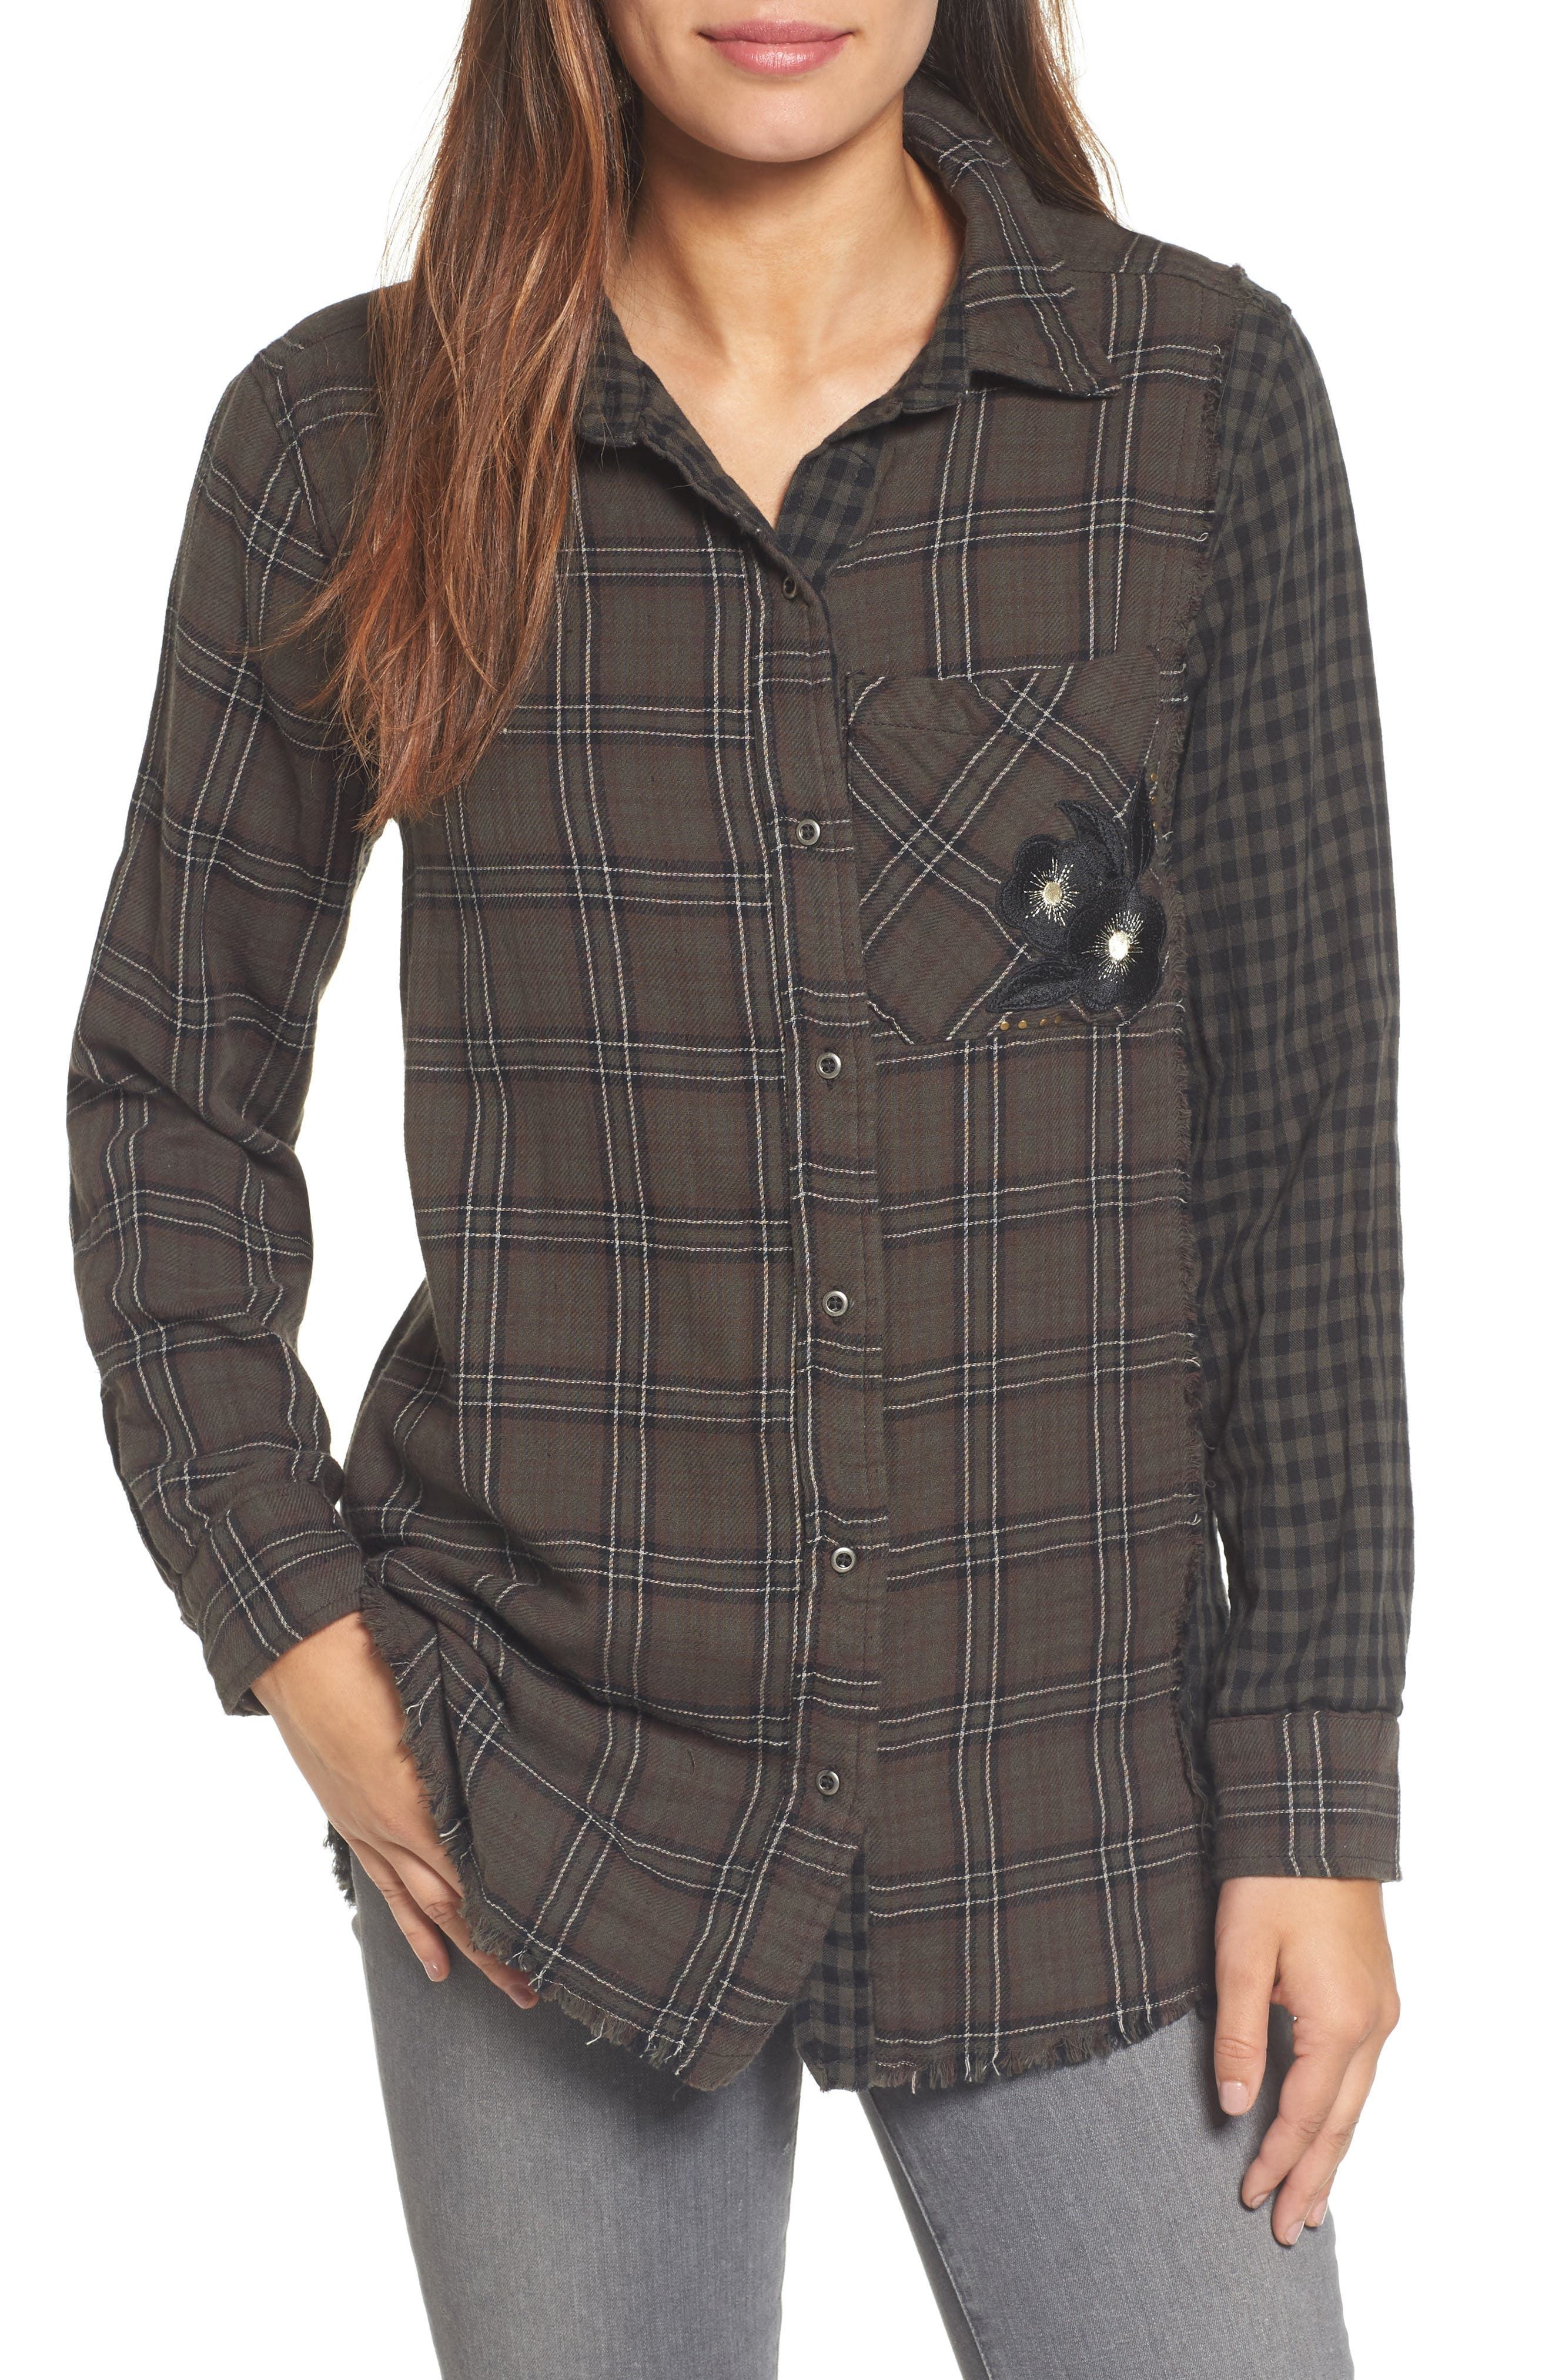 Alternate Image 1 Selected - Wit & Wisdom Contrast Sleeve Button-Down Top (Nordstrom Exclusive)